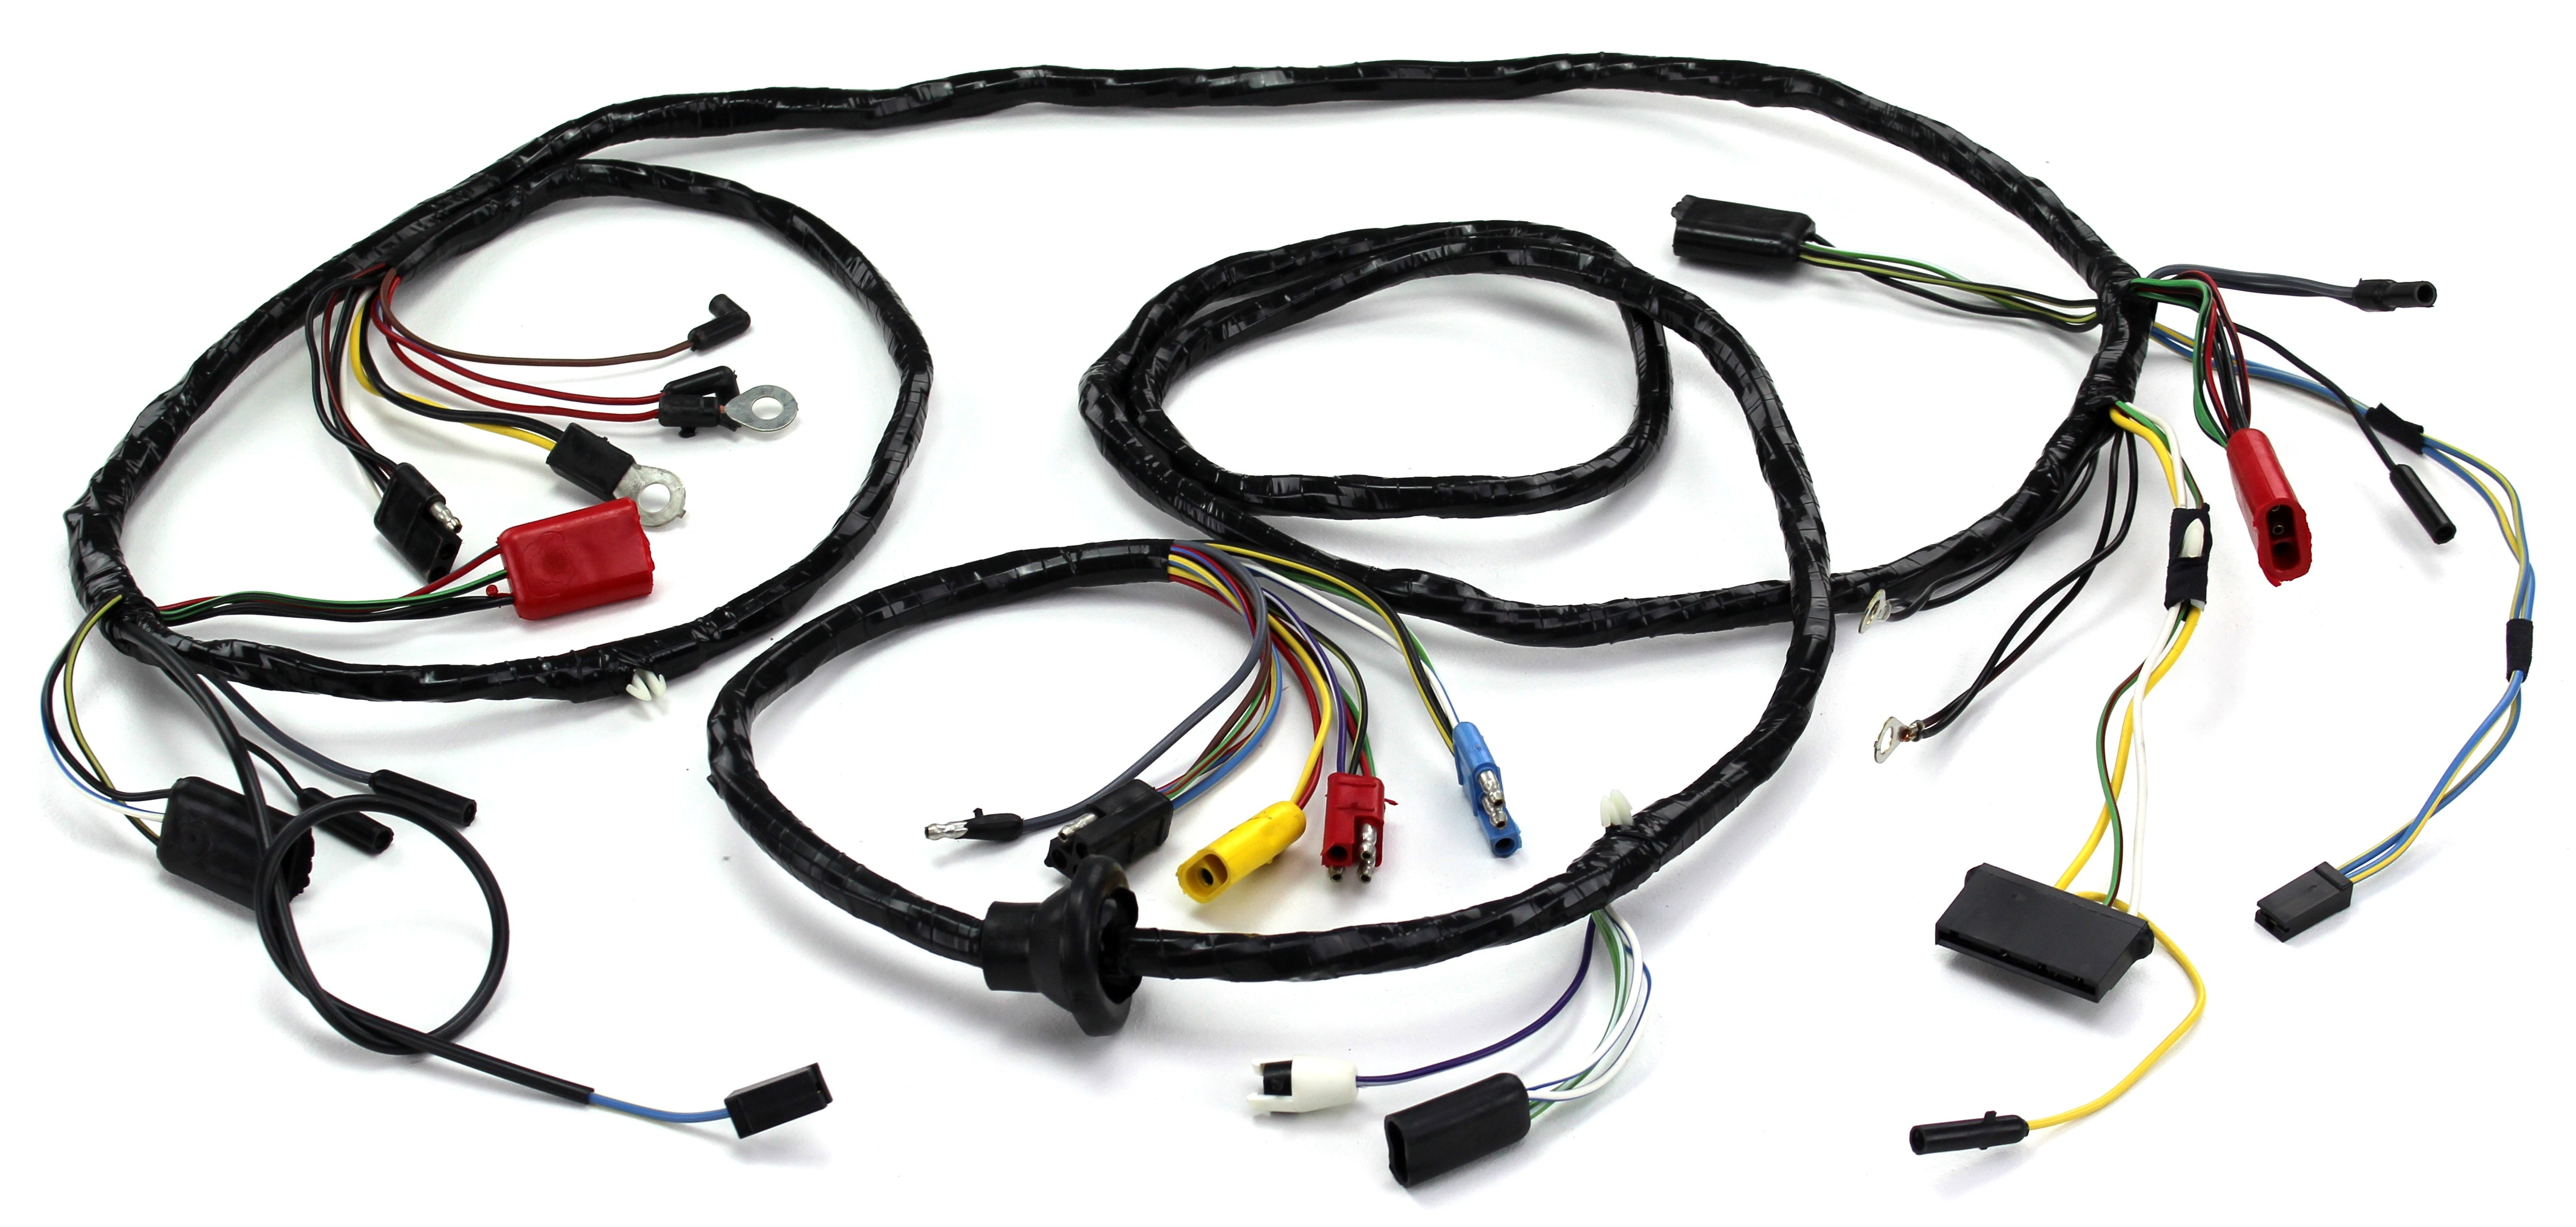 5186 2?1433507604 head light wiring harness w o tach gt 1967 alloy metal products alloy metal wire harness at eliteediting.co